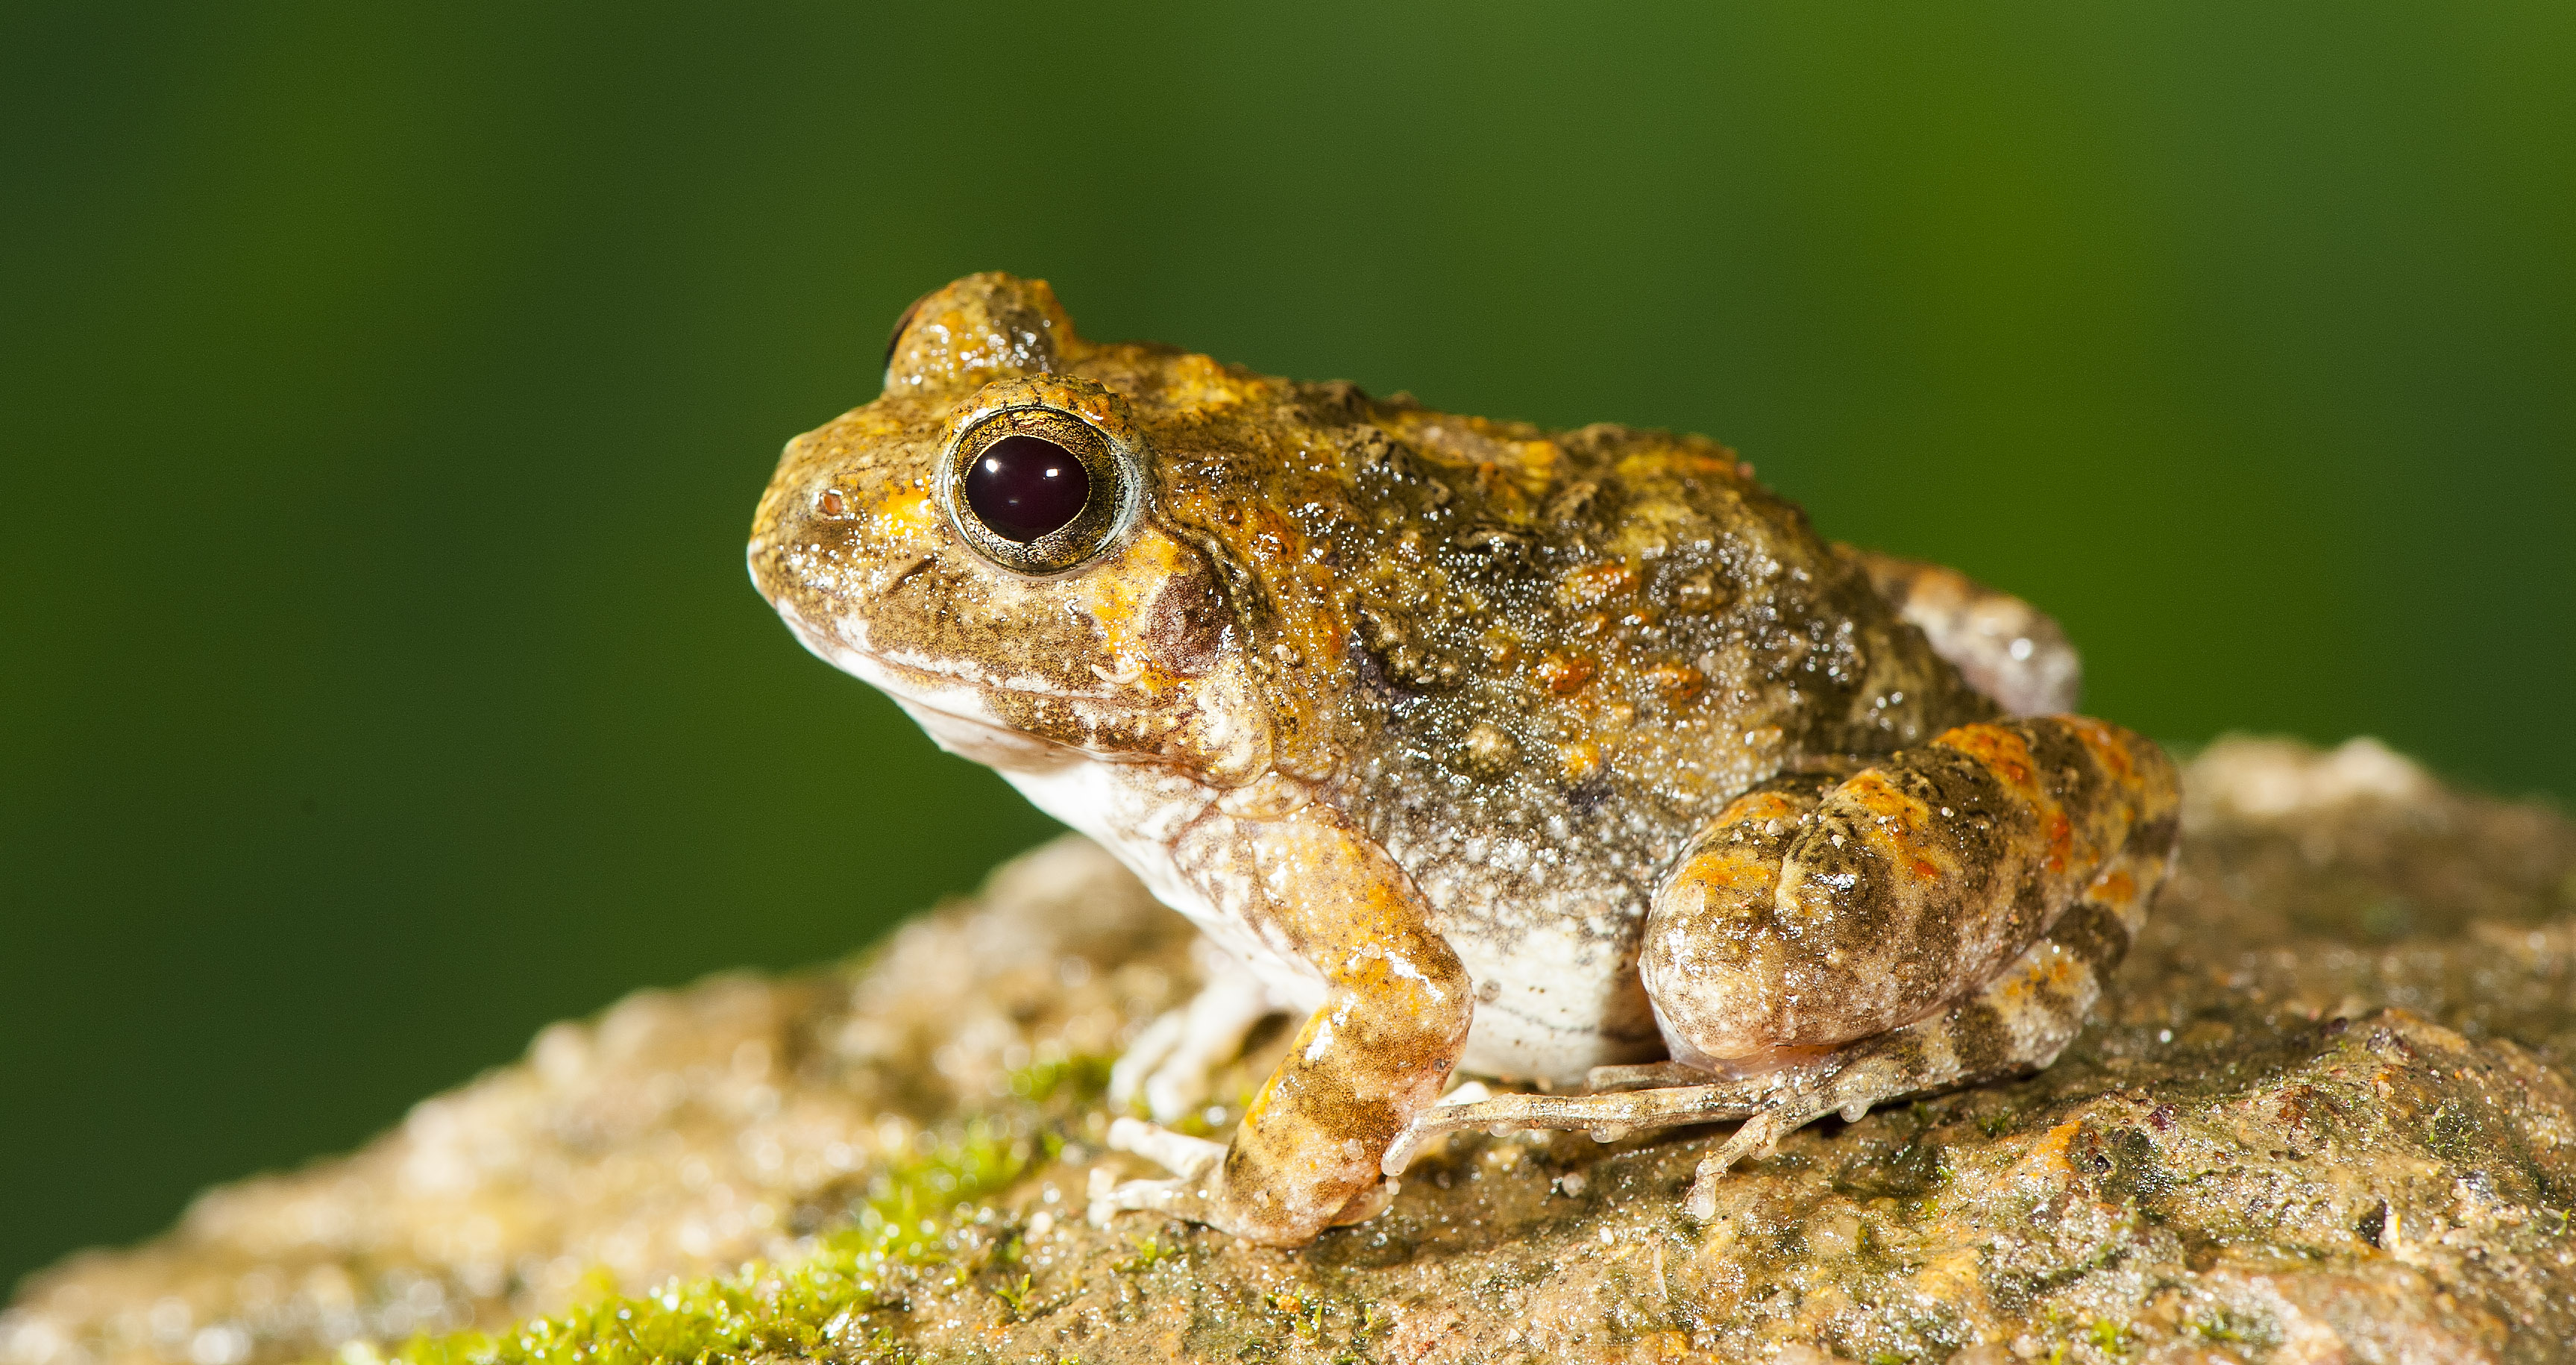 Four new species of burrowing frog, from Western Ghats India